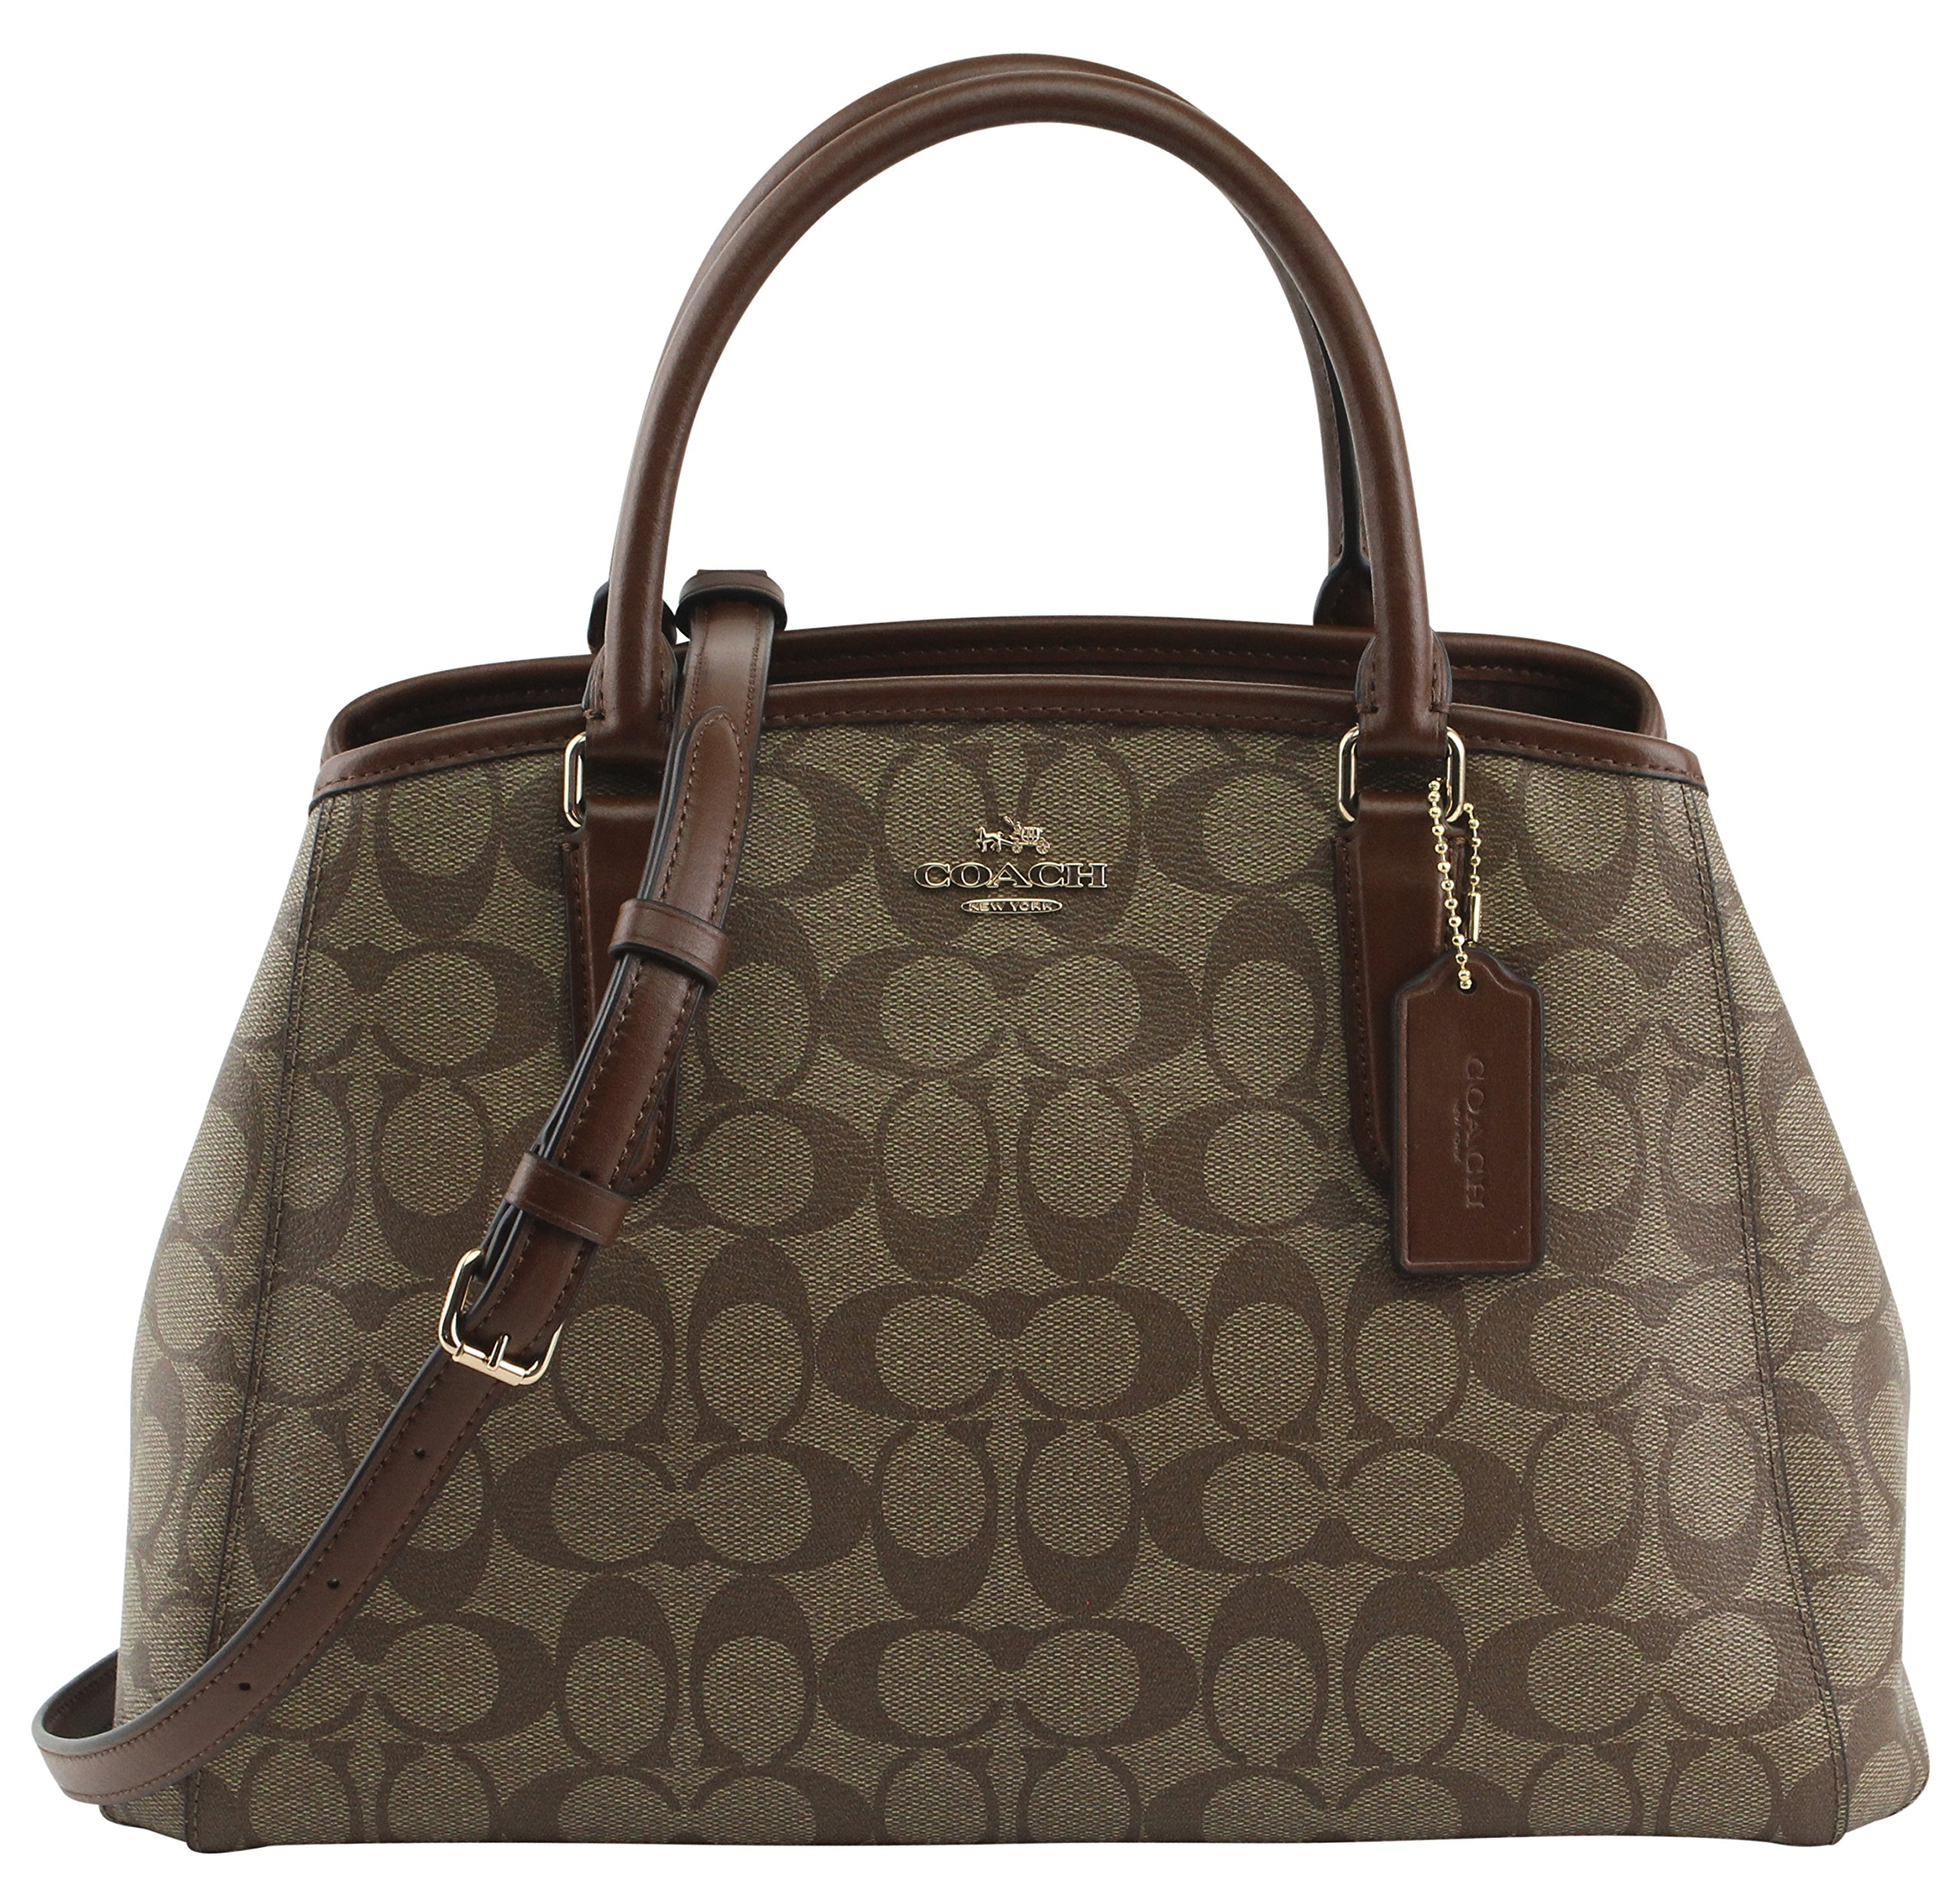 Coach Women's Signature Small Margot Carryal Hand Bag, Style F58310, Im Khaki Saddle by Coach